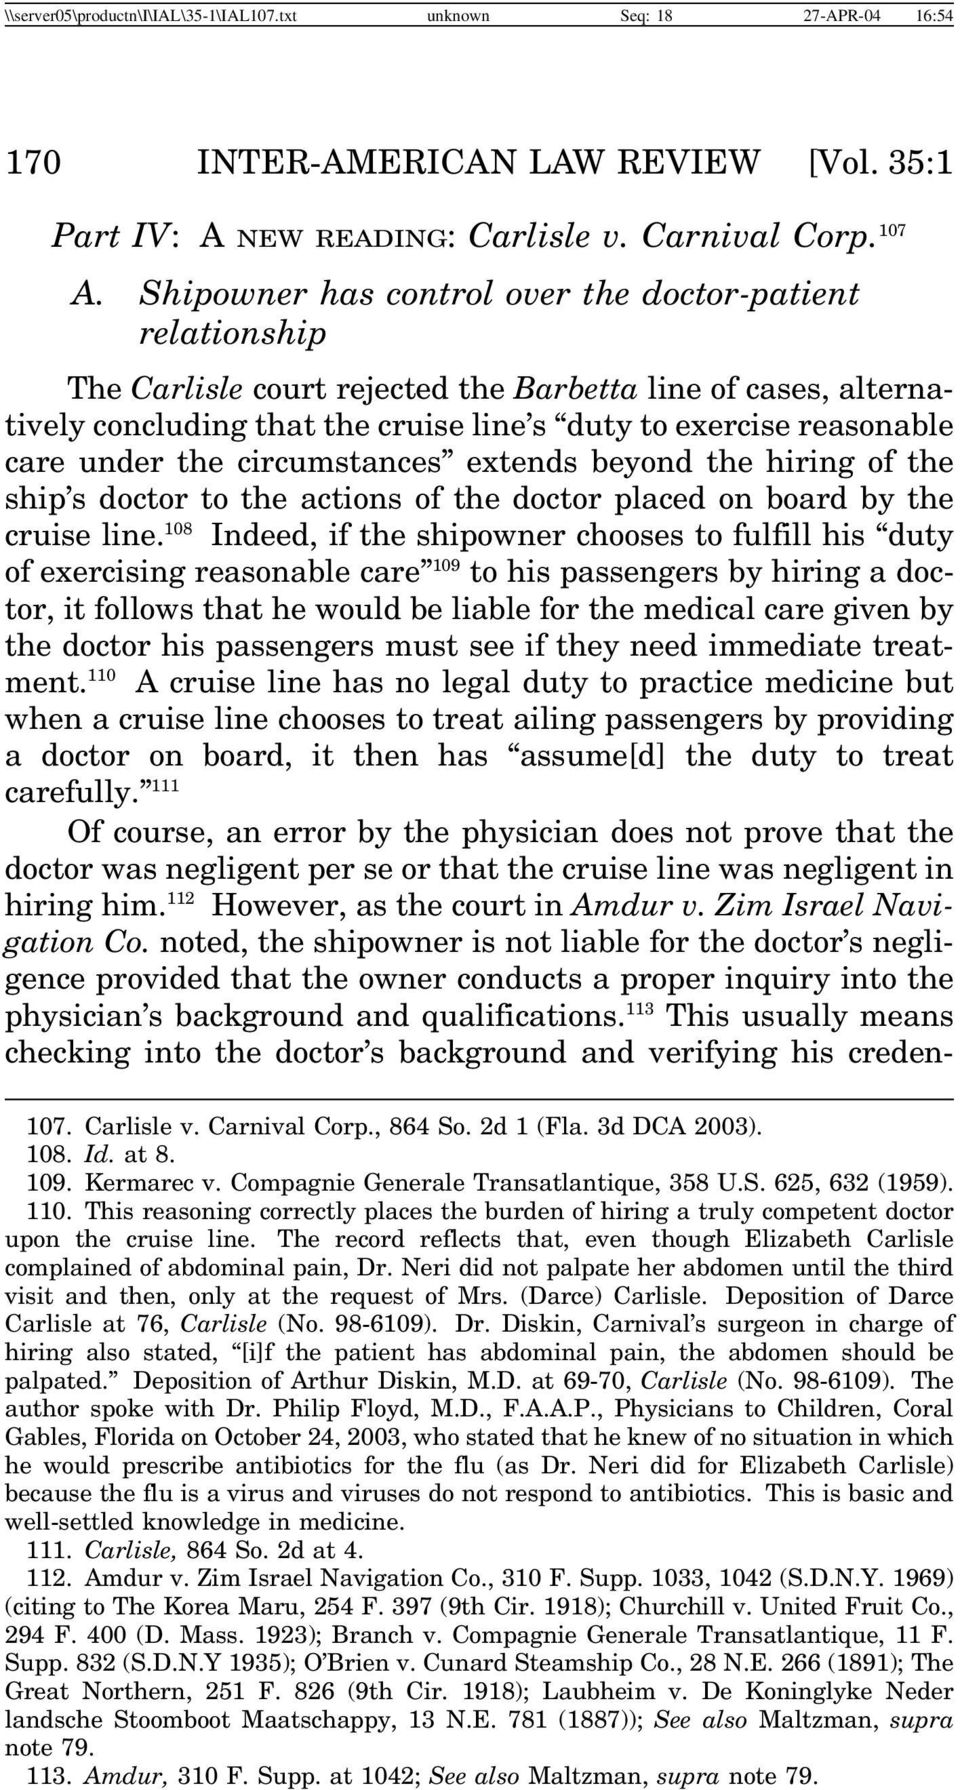 under the circumstances extends beyond the hiring of the ship s doctor to the actions of the doctor placed on board by the cruise line.